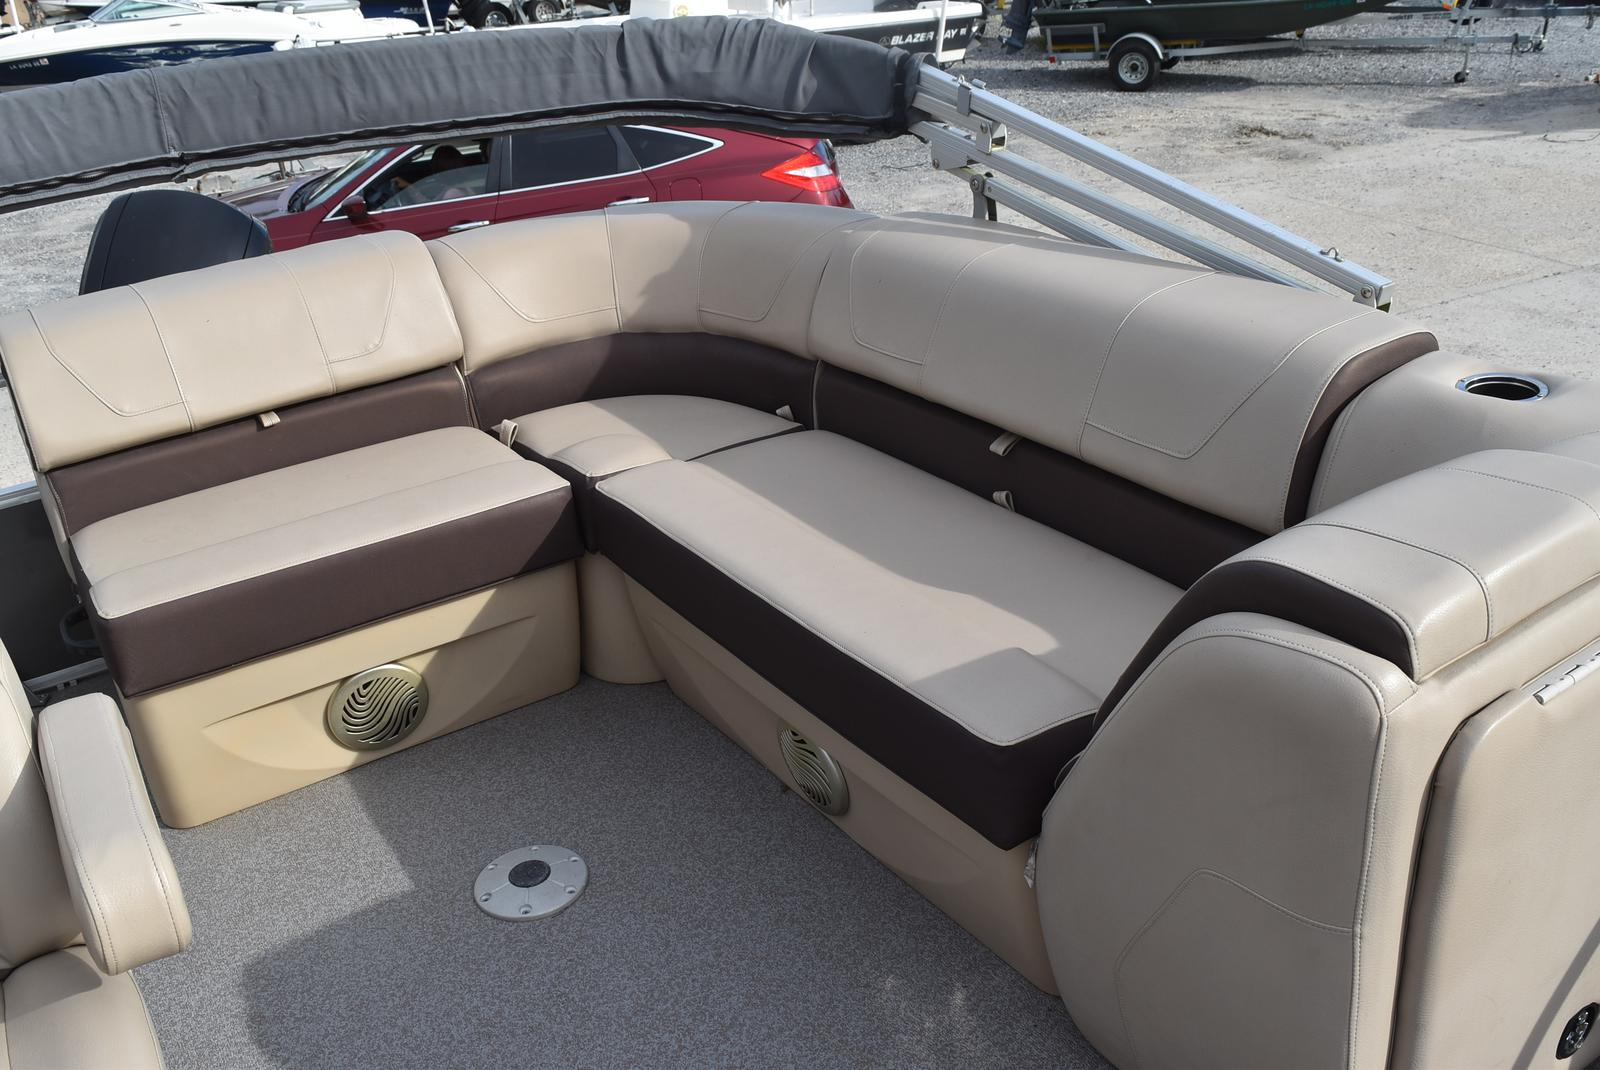 2018 Sun Tracker boat for sale, model of the boat is Party Barge 20 DLX, 90CT & Image # 5 of 14